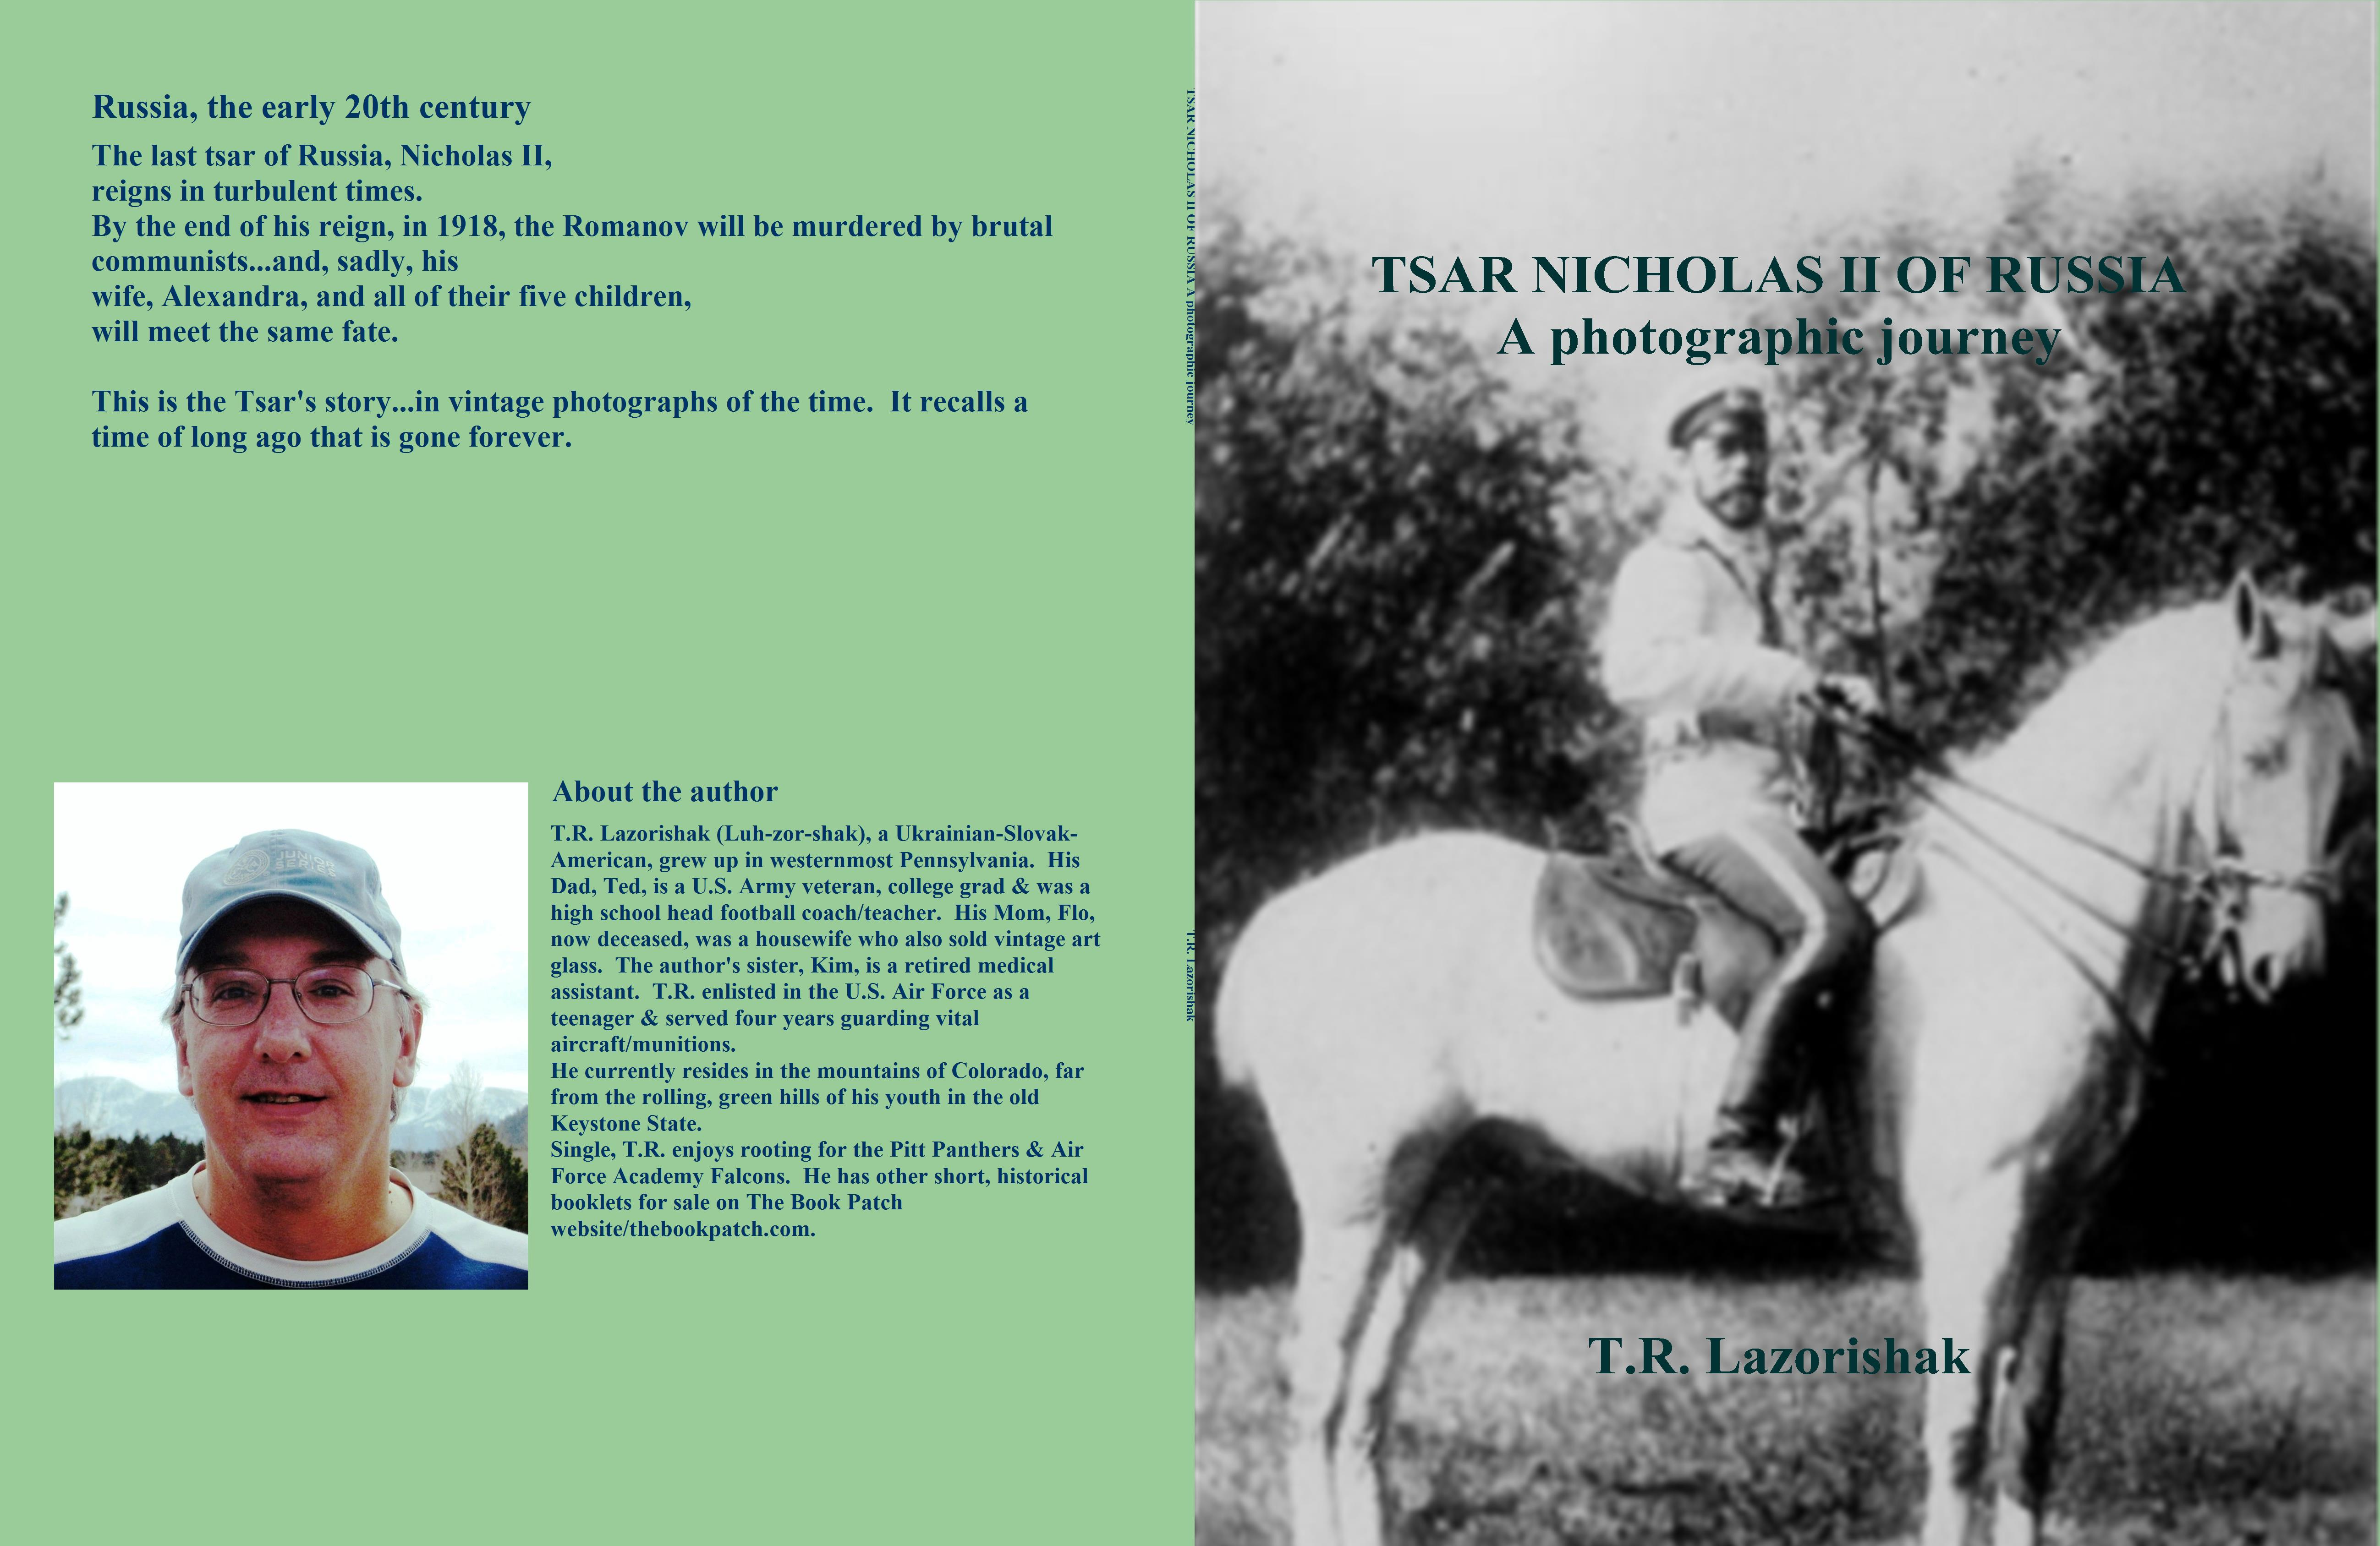 TSAR NICHOLAS II OF RUSSIA A photographic journey cover image